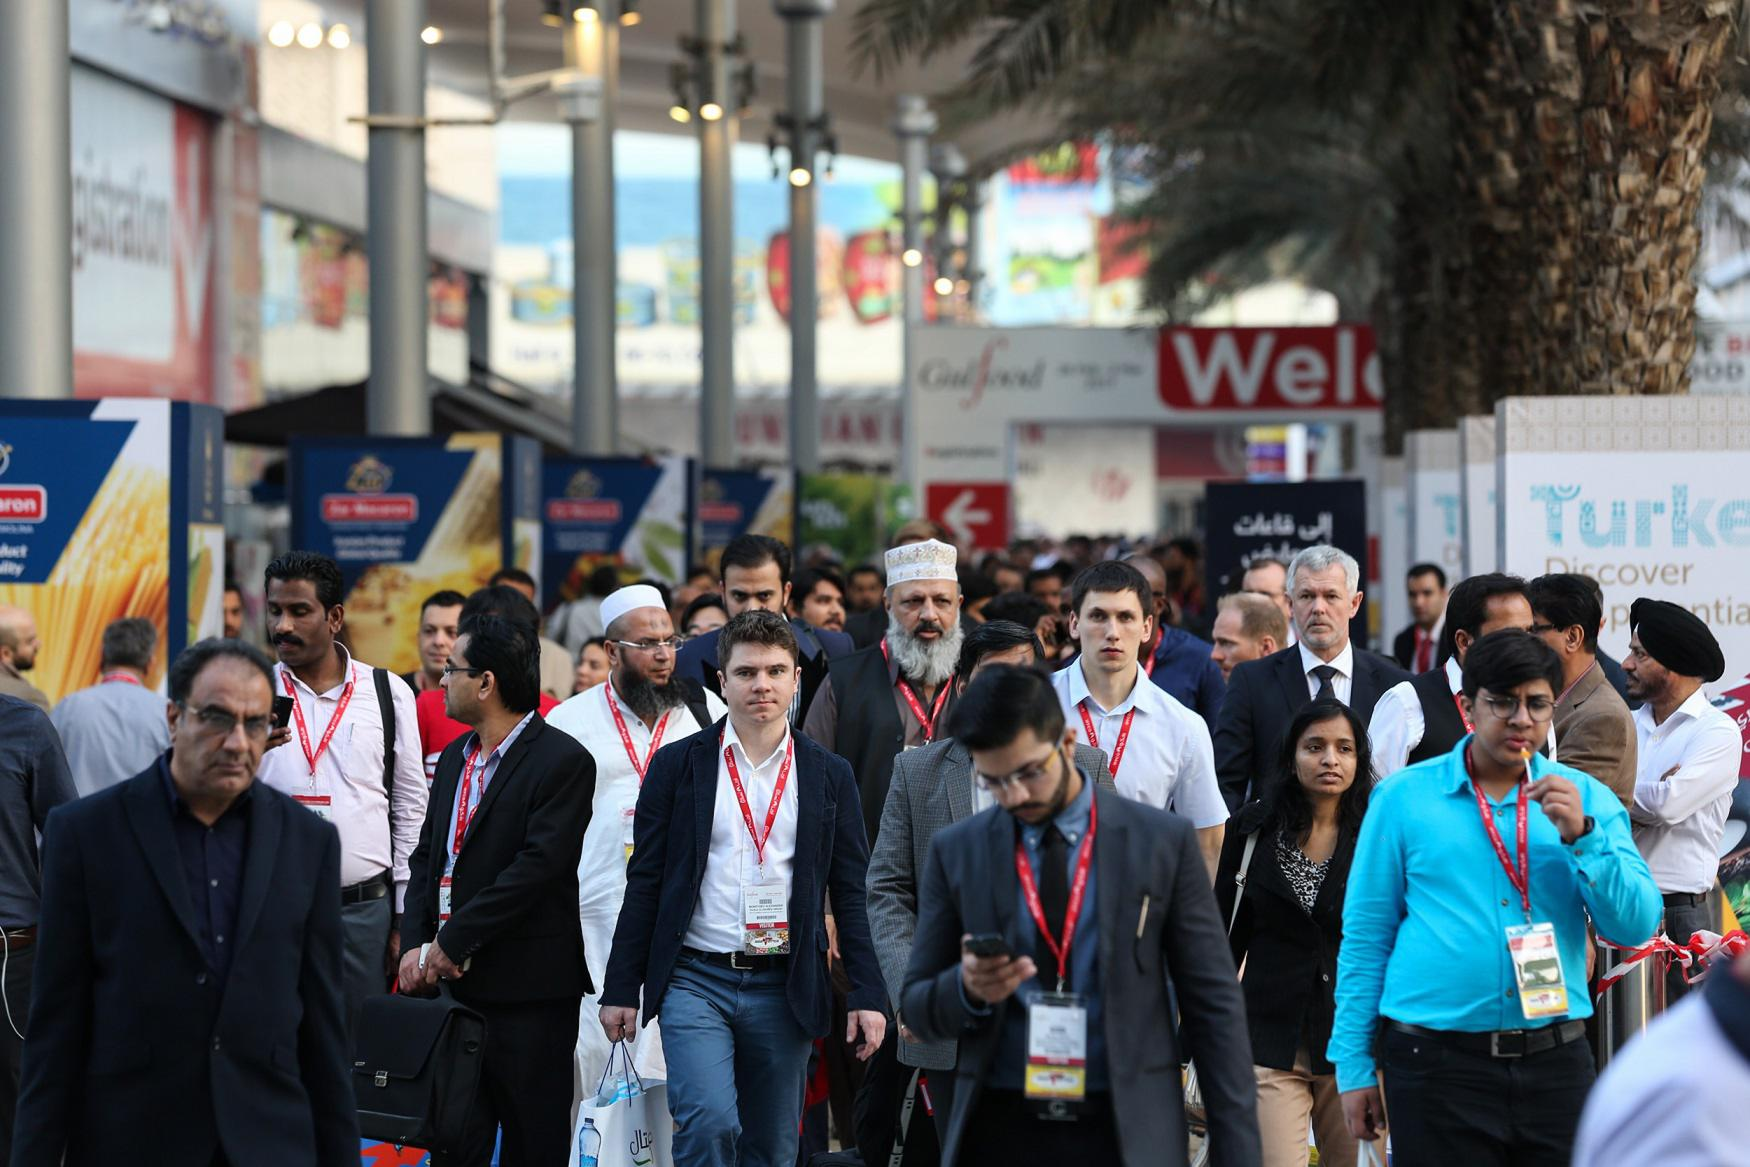 Global Industry Outlook To Be Unveiled Today At Gulfood 2018